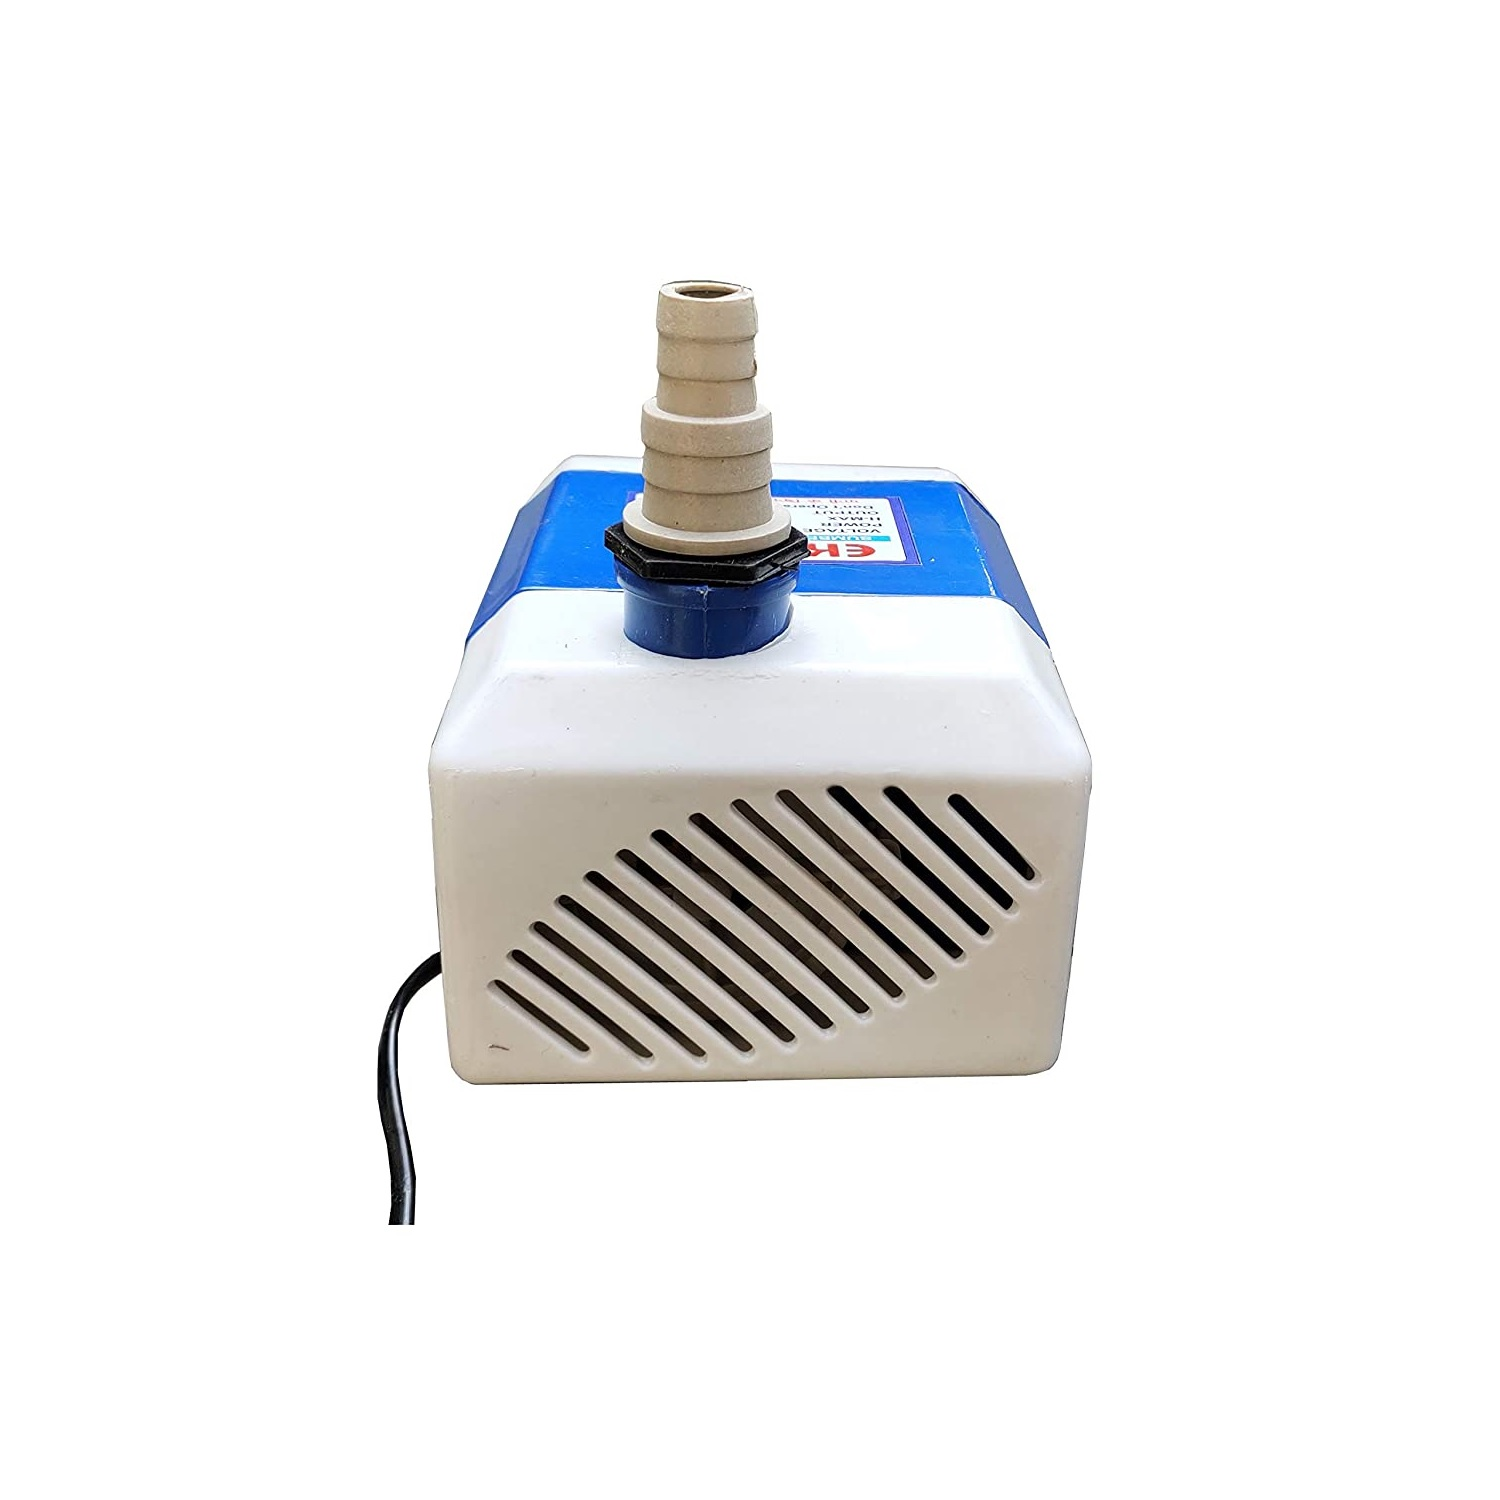 Water Cooler Pump Water Lifting Submersible Pump for Aquarium, Fountains, Desert Air Coolers with Multicolor.